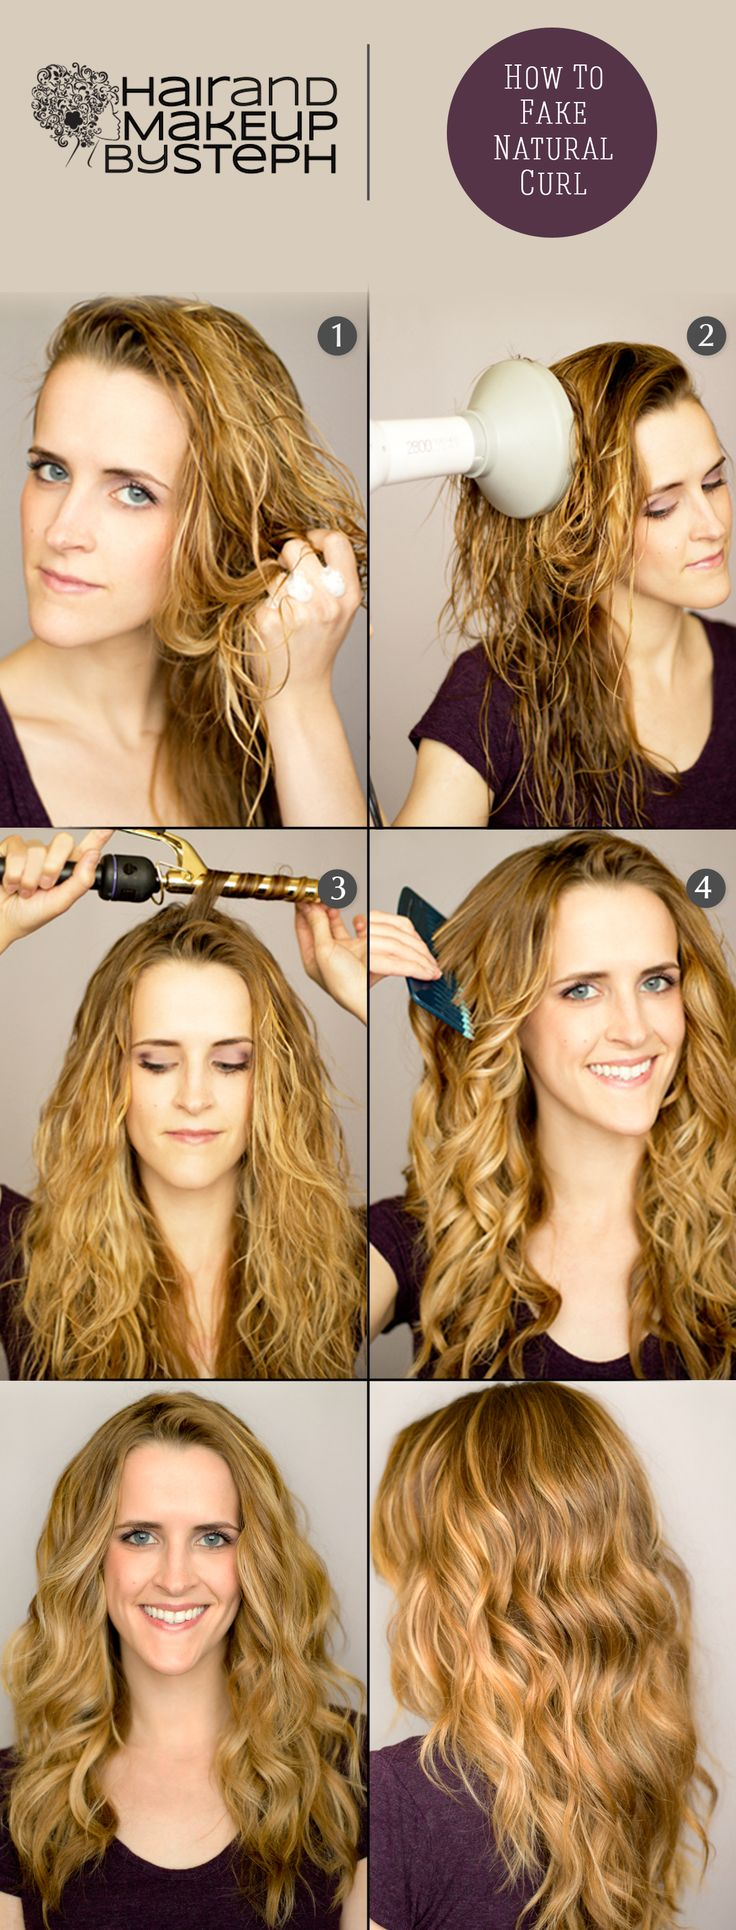 how to fake natural curl tutorial | blog.hairandmakeupbysteph.com